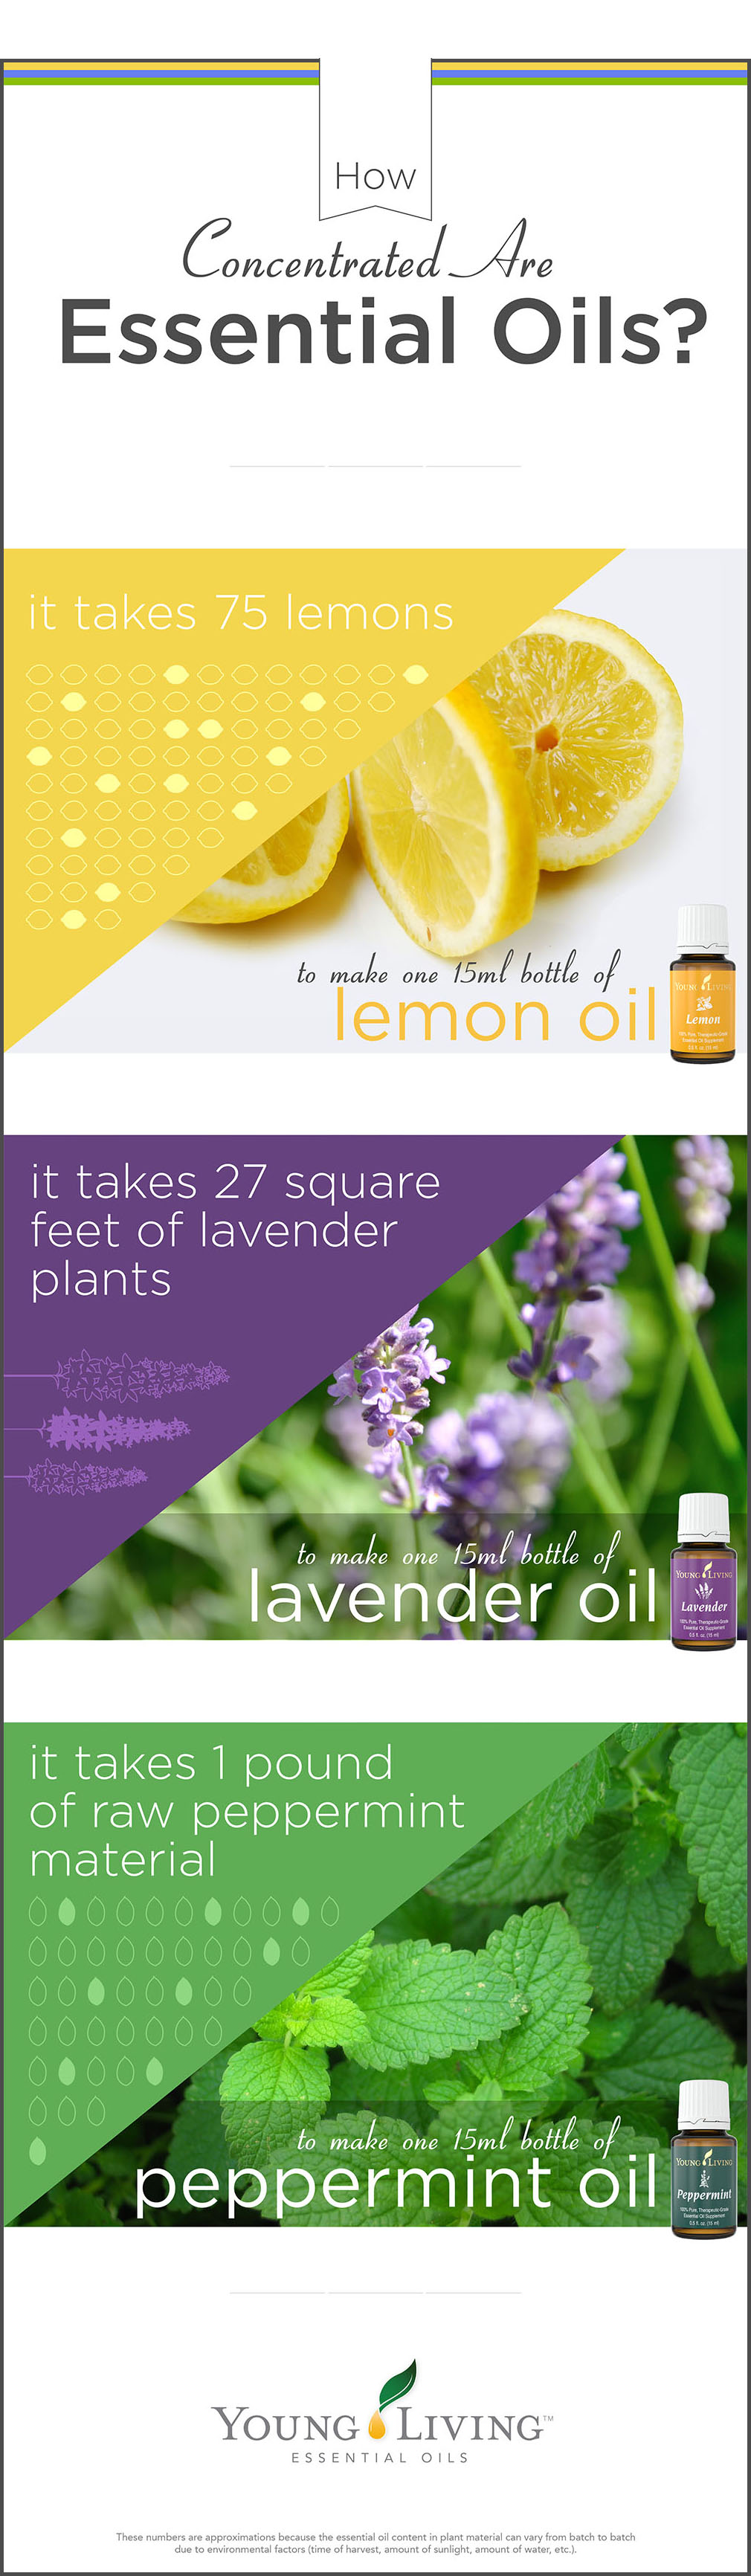 Lavender Essential Oil Promotes Breathing Freely Mama